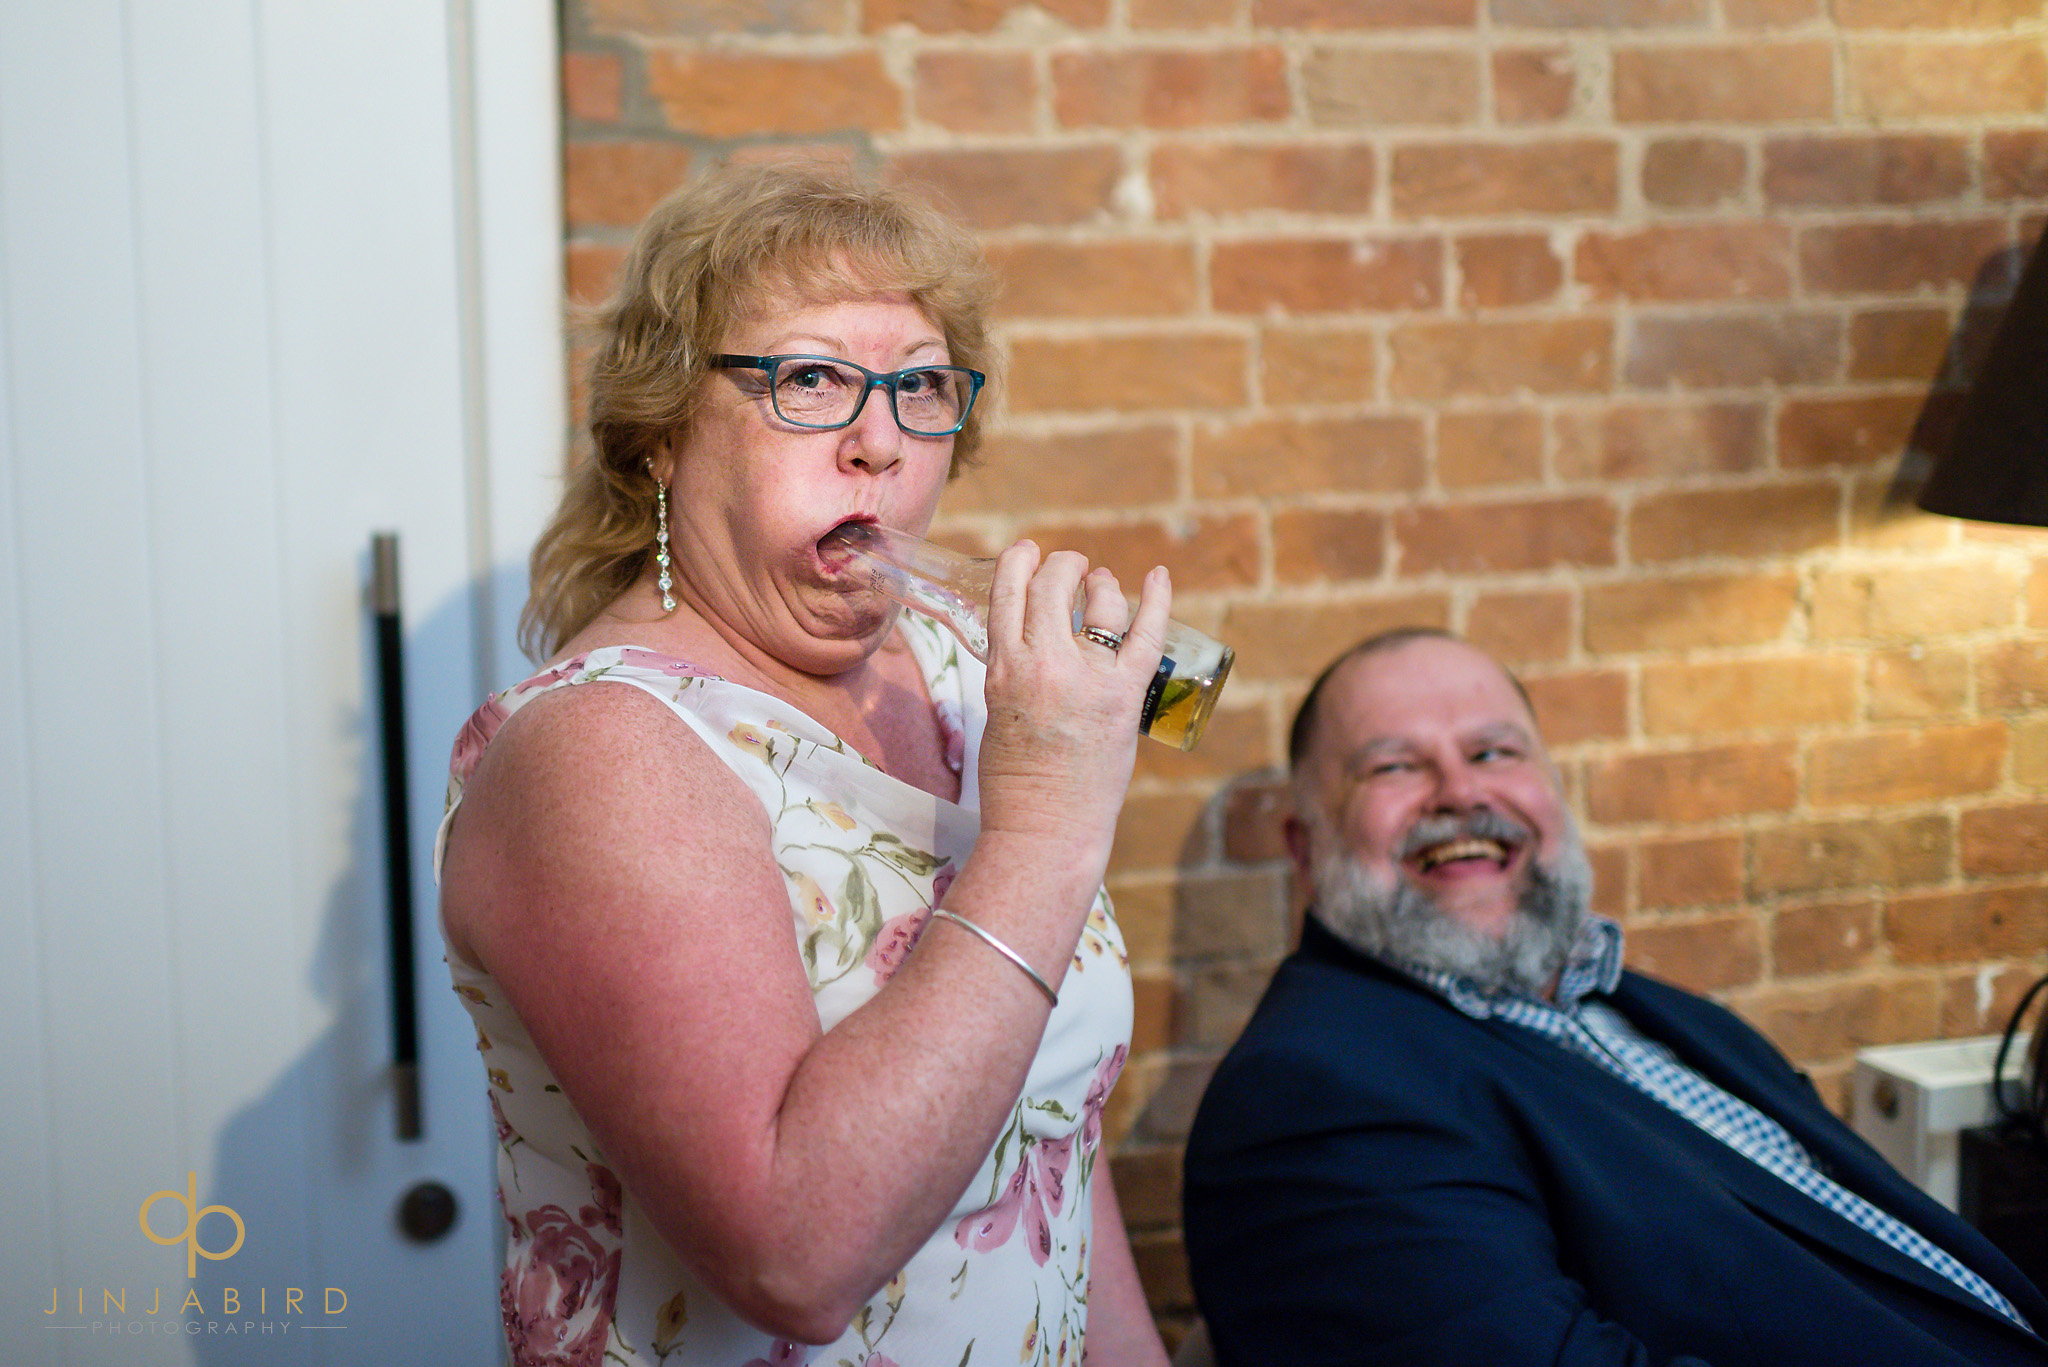 wedding guest with bottle in mouth